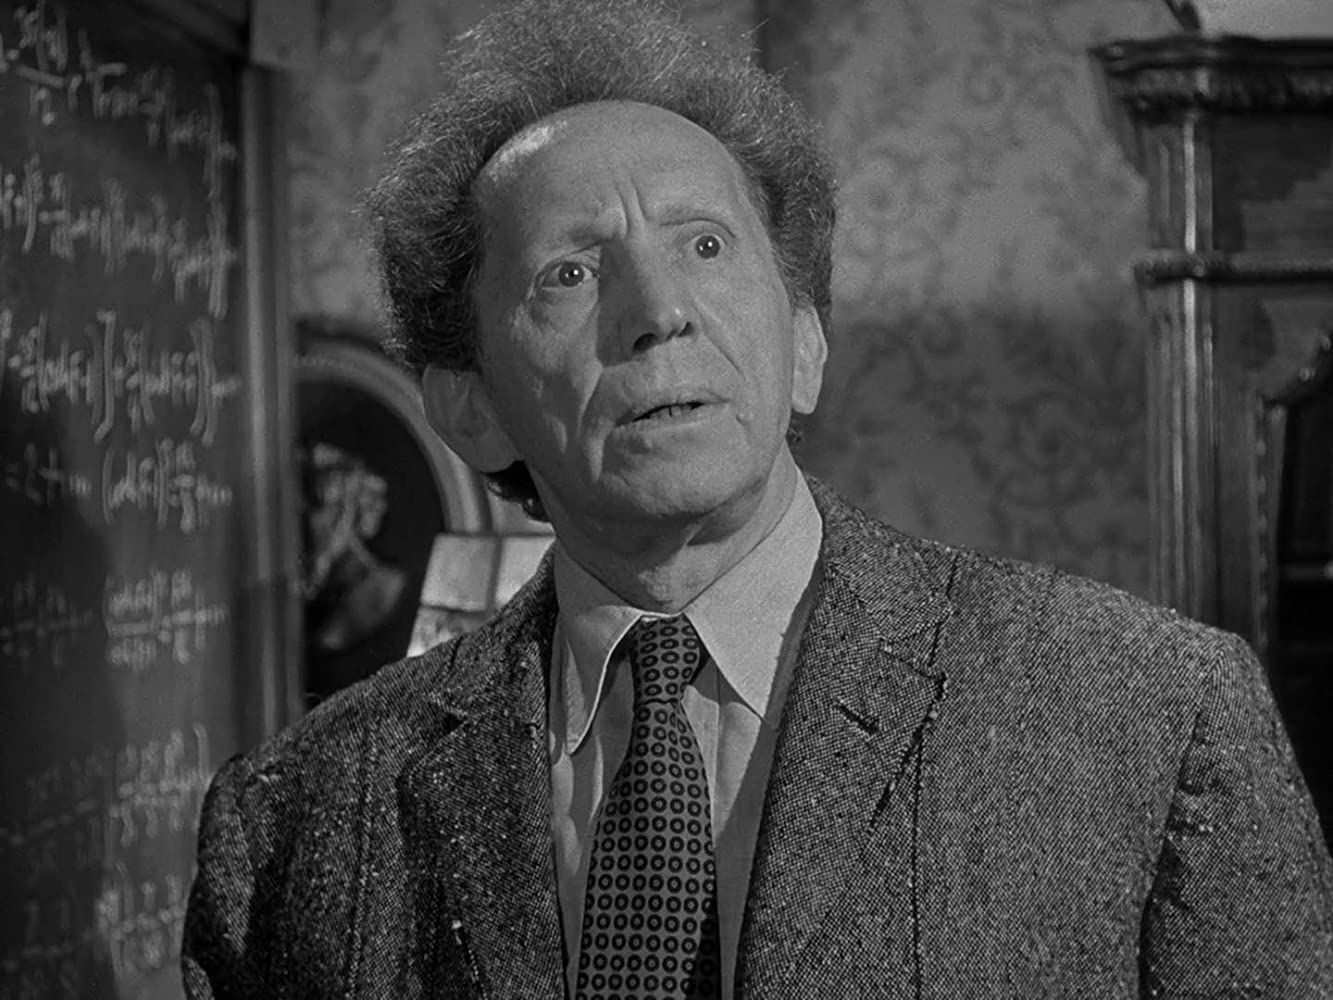 Sam Jaffe in The Day the Earth Stood Still (1951)